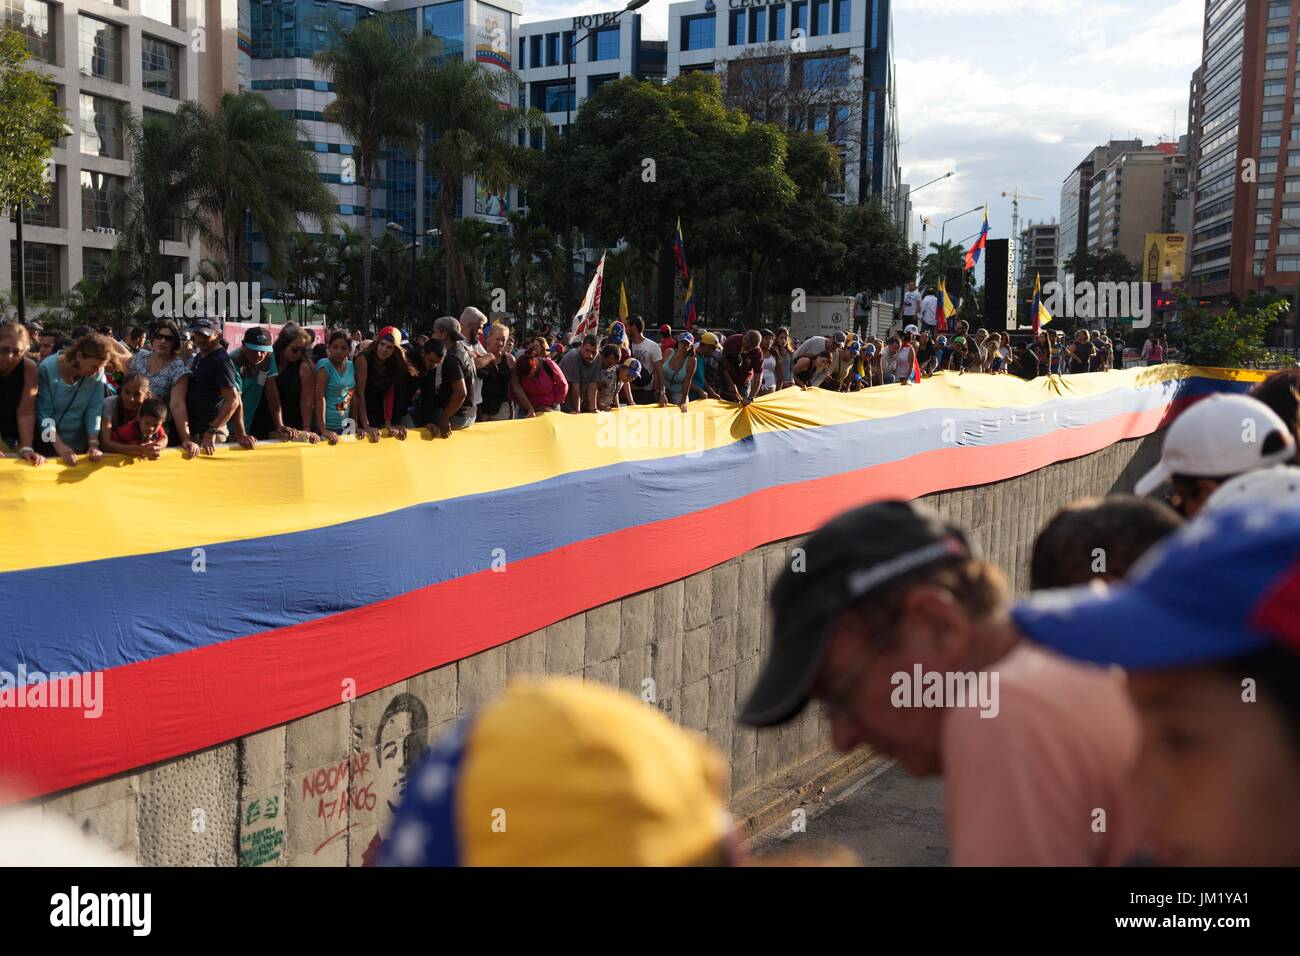 Caracas, Venezuela. 24th July, 2017. Numerous people partake in a memoral event for the victims of government oppression Stock Photo